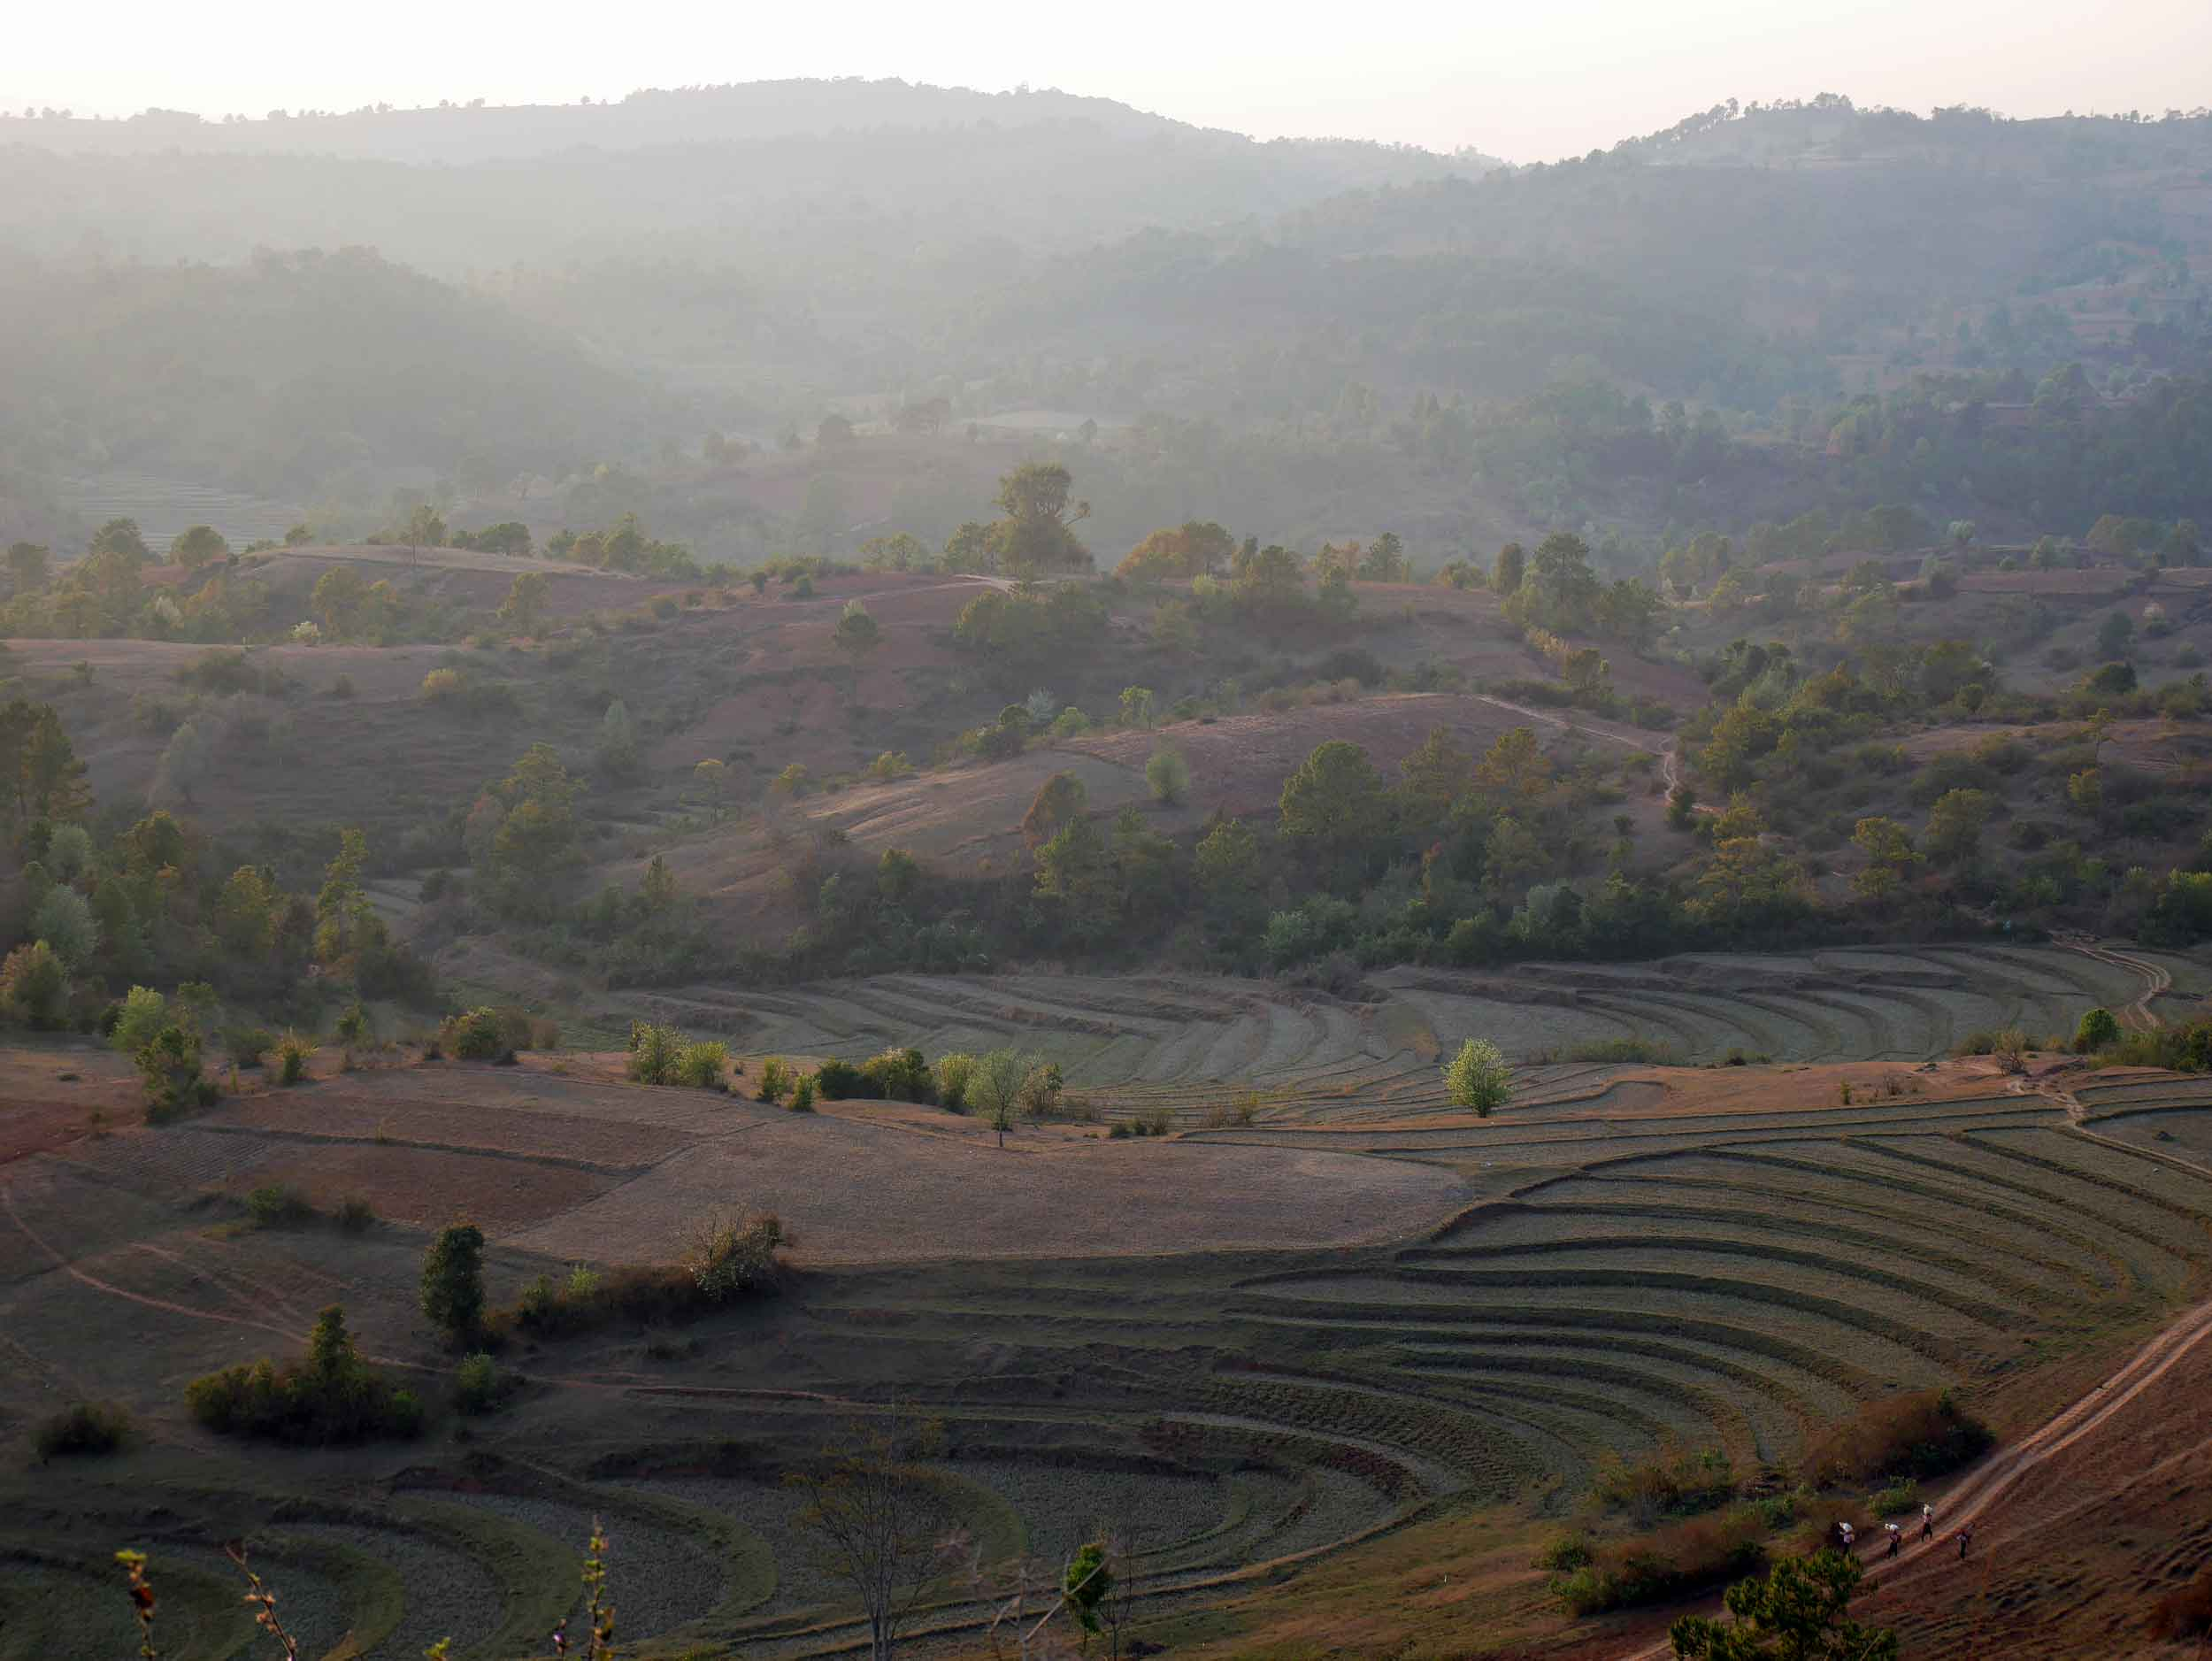 The 2-day hike wandered across farmland, over hills, and through tribal villages to Inle Lake (Feb 20).